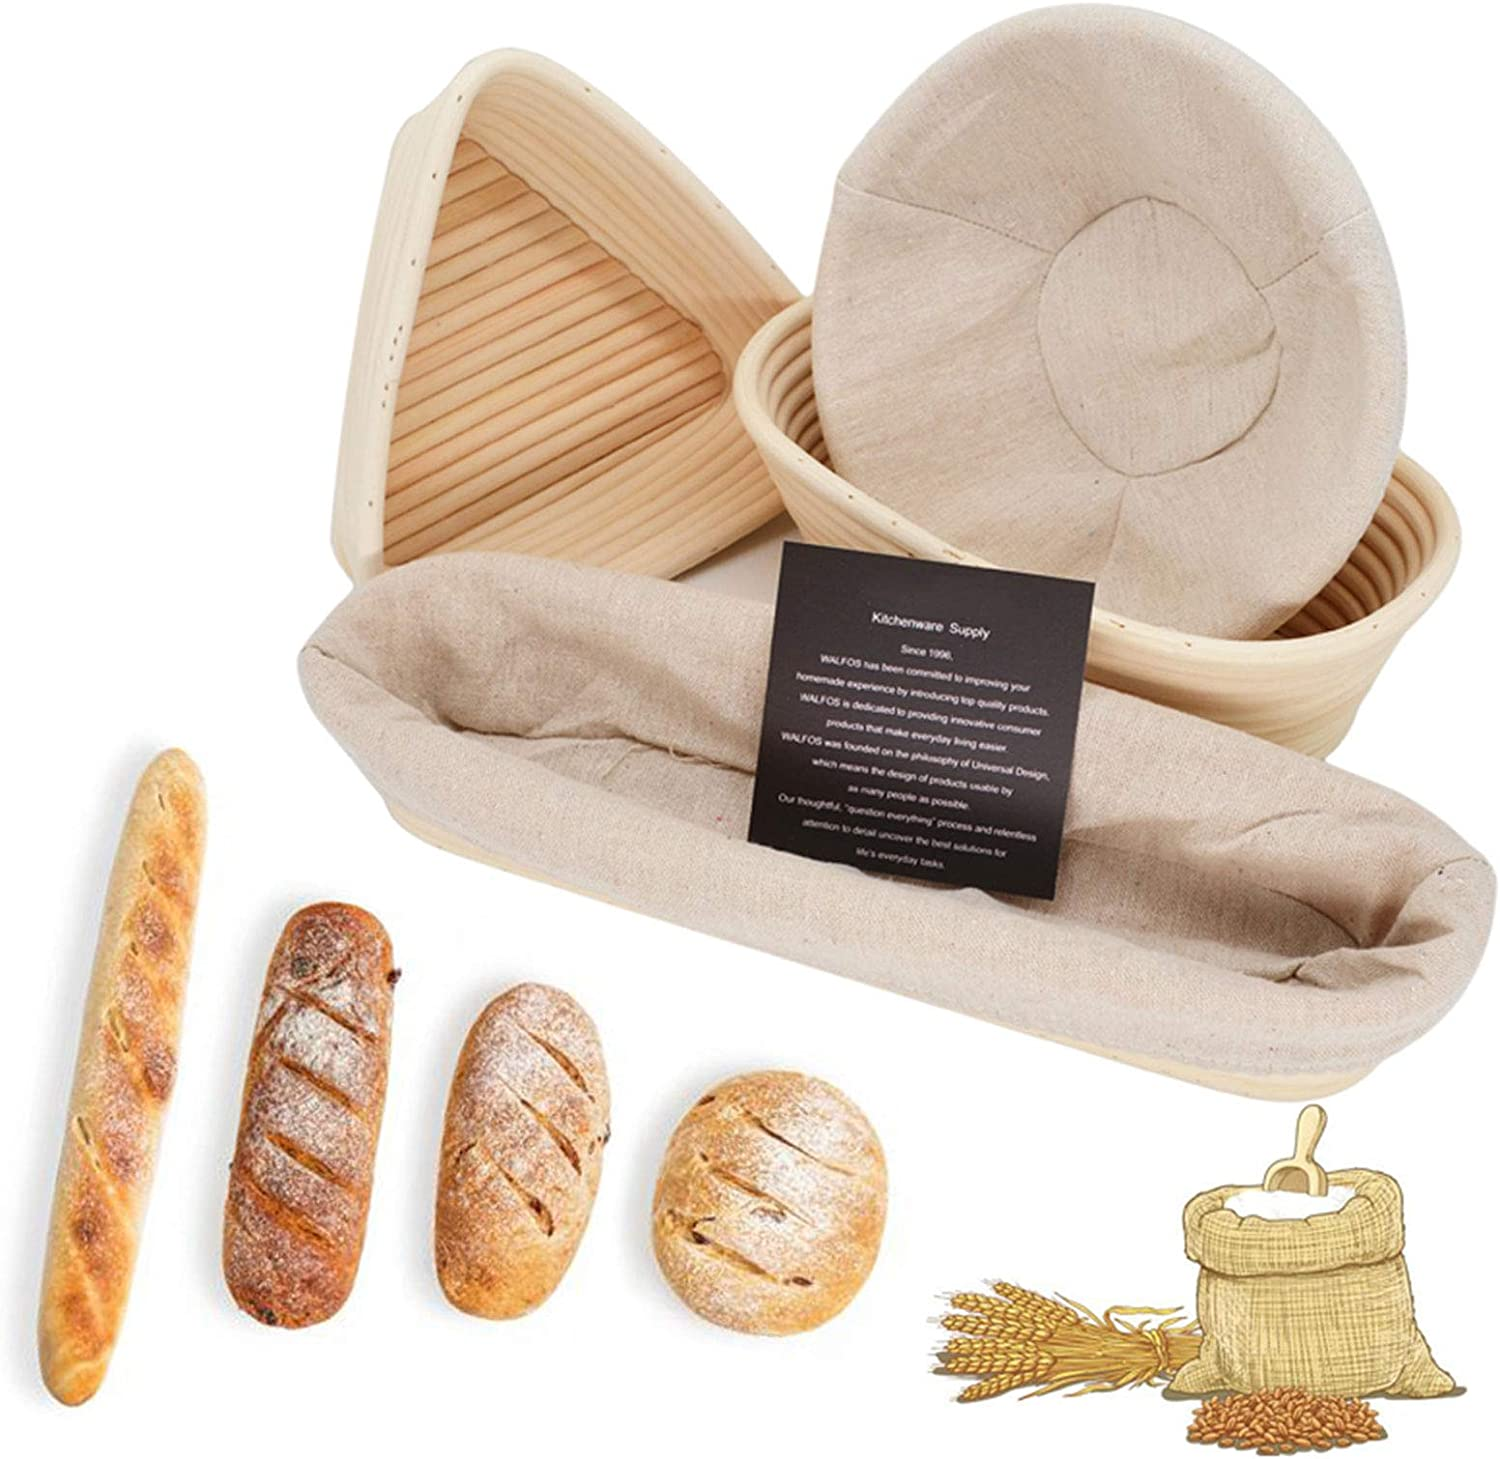 WSJMJ 4PCS Bread Oklahoma City Mall Proofing Baskets A surprise price is realized Rattan Natural Prov Sourdough